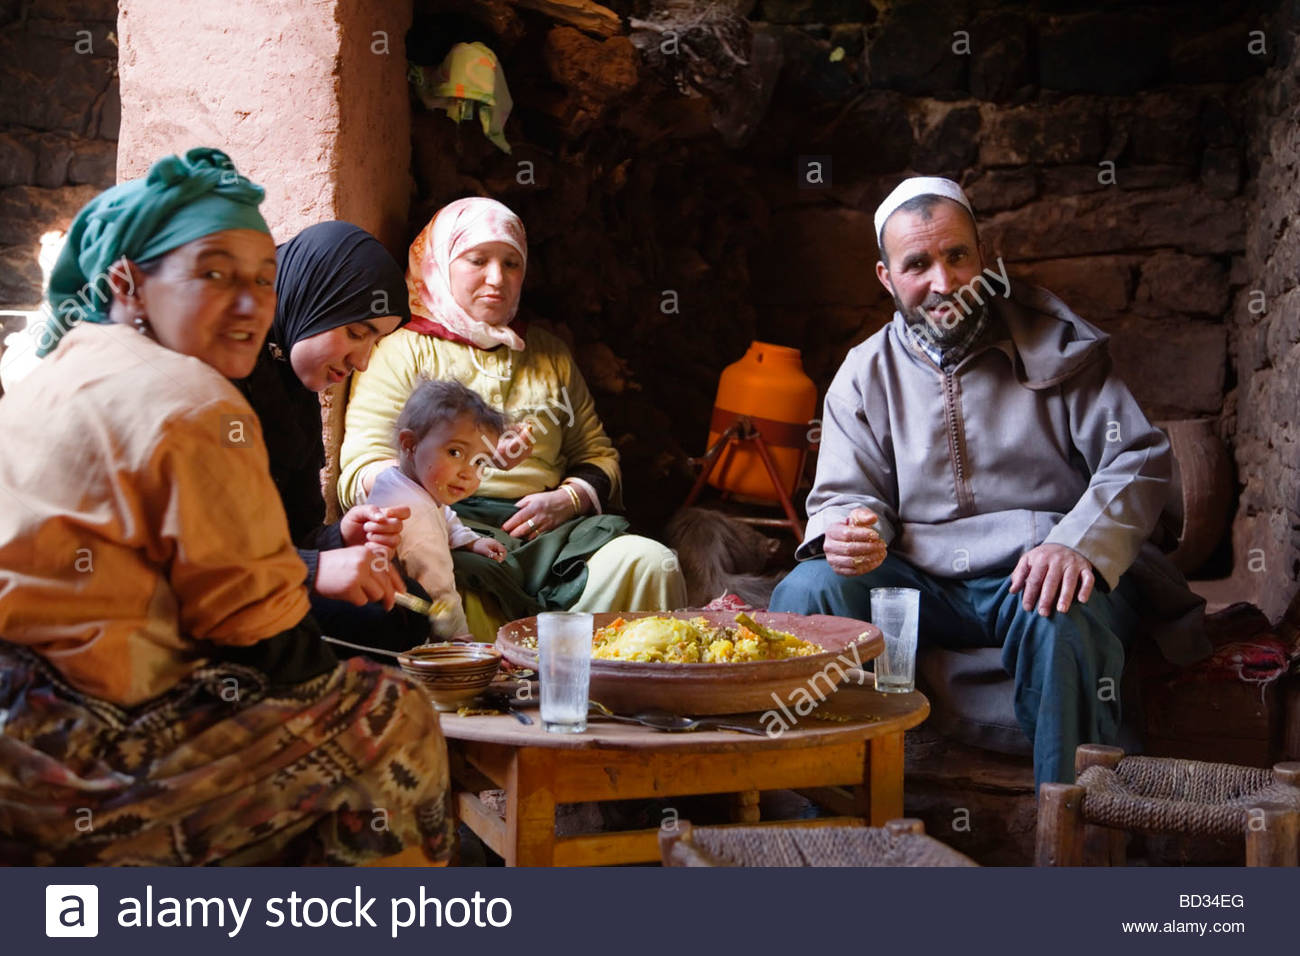 A Berber family eat a traditional tagine meal in a Moroccan house near Marrakech, Morocco Stock Photo